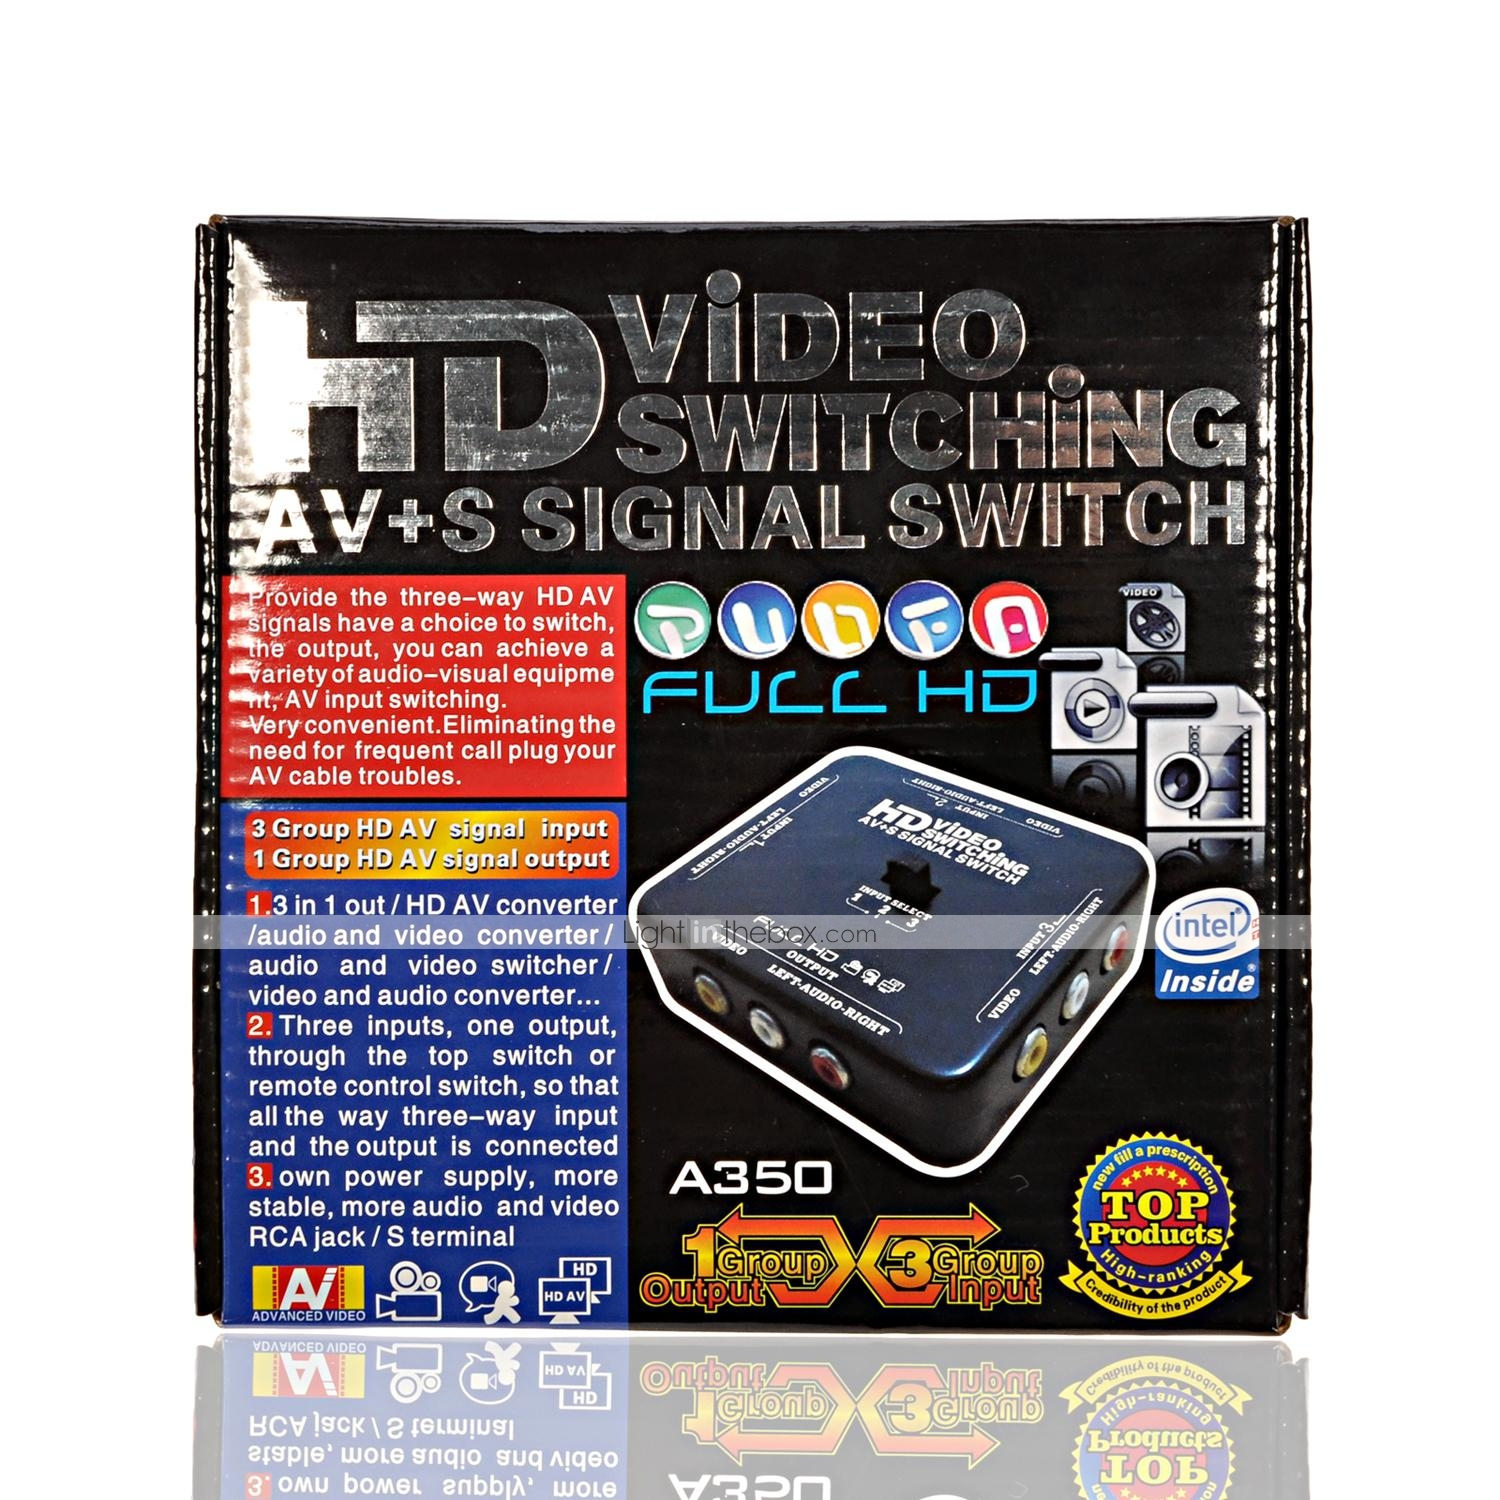 A350 High Ranking Hd Audio Video Switching Av S Signal Switcher 2 Way Rca Switch Photos